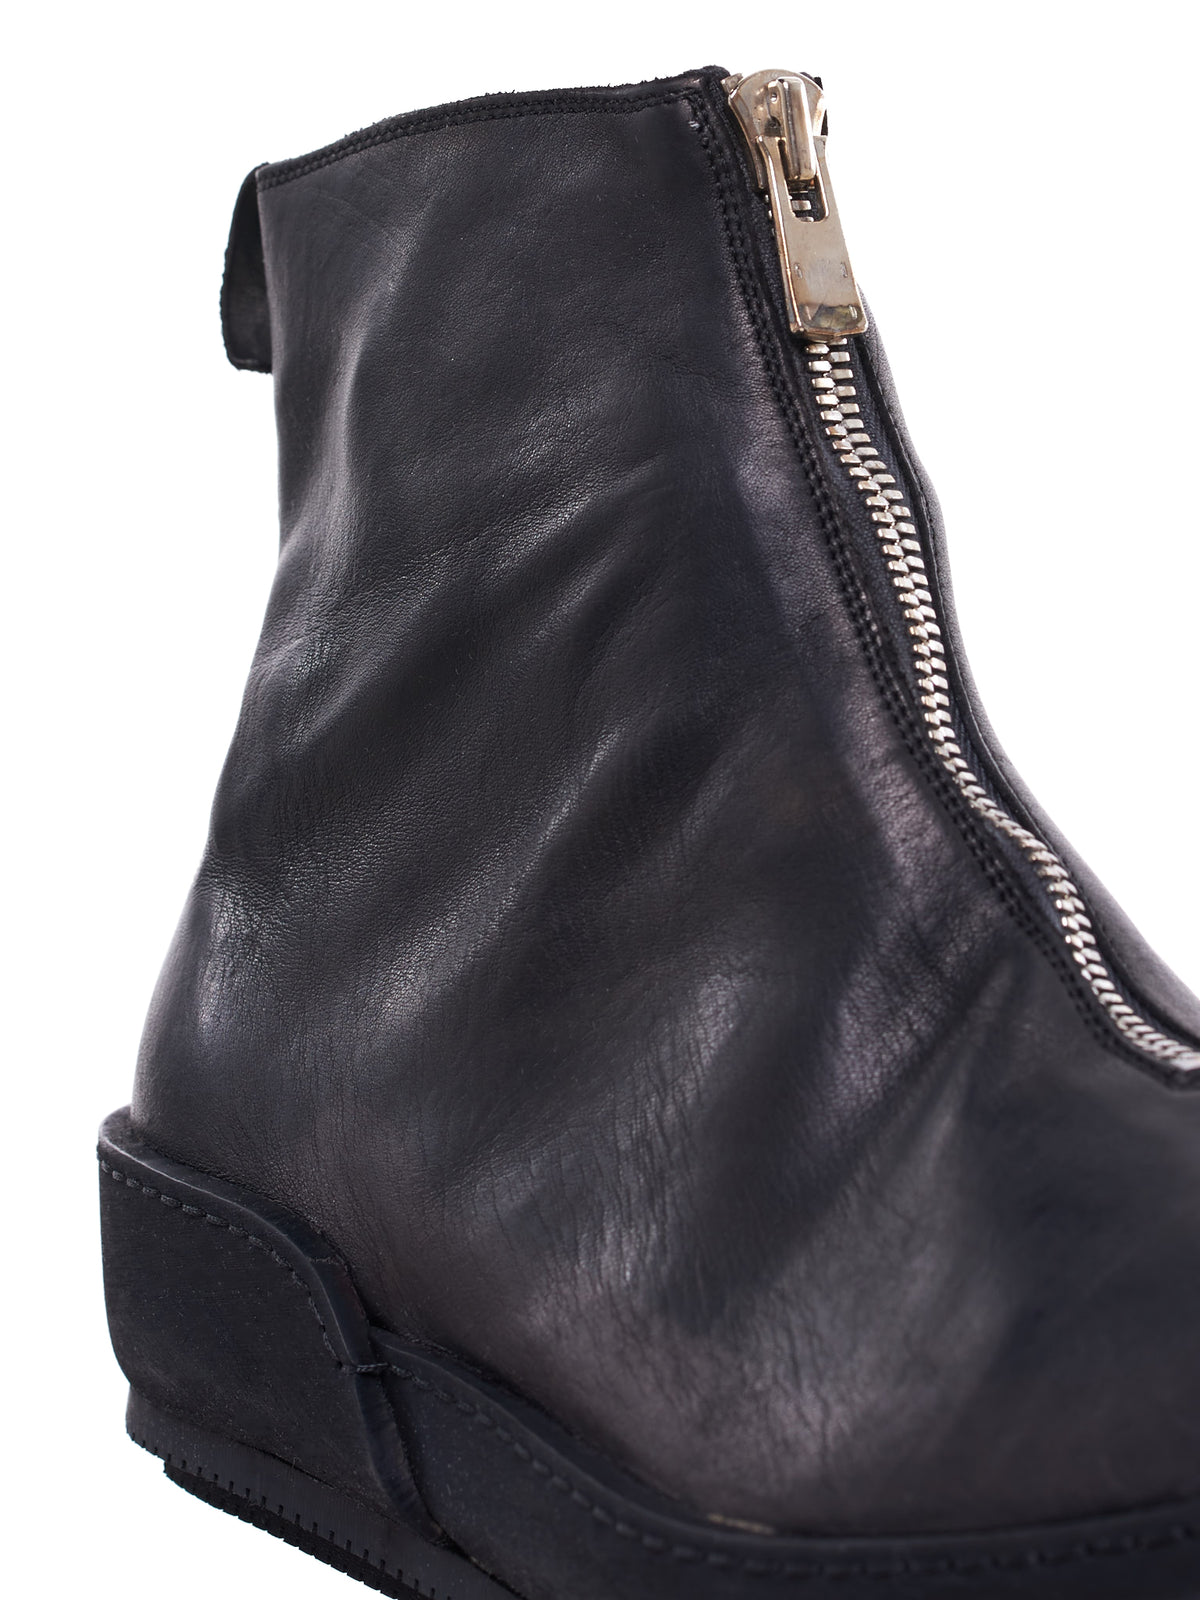 Guidi Sneaker Boot - Hlorenzo Detail 2